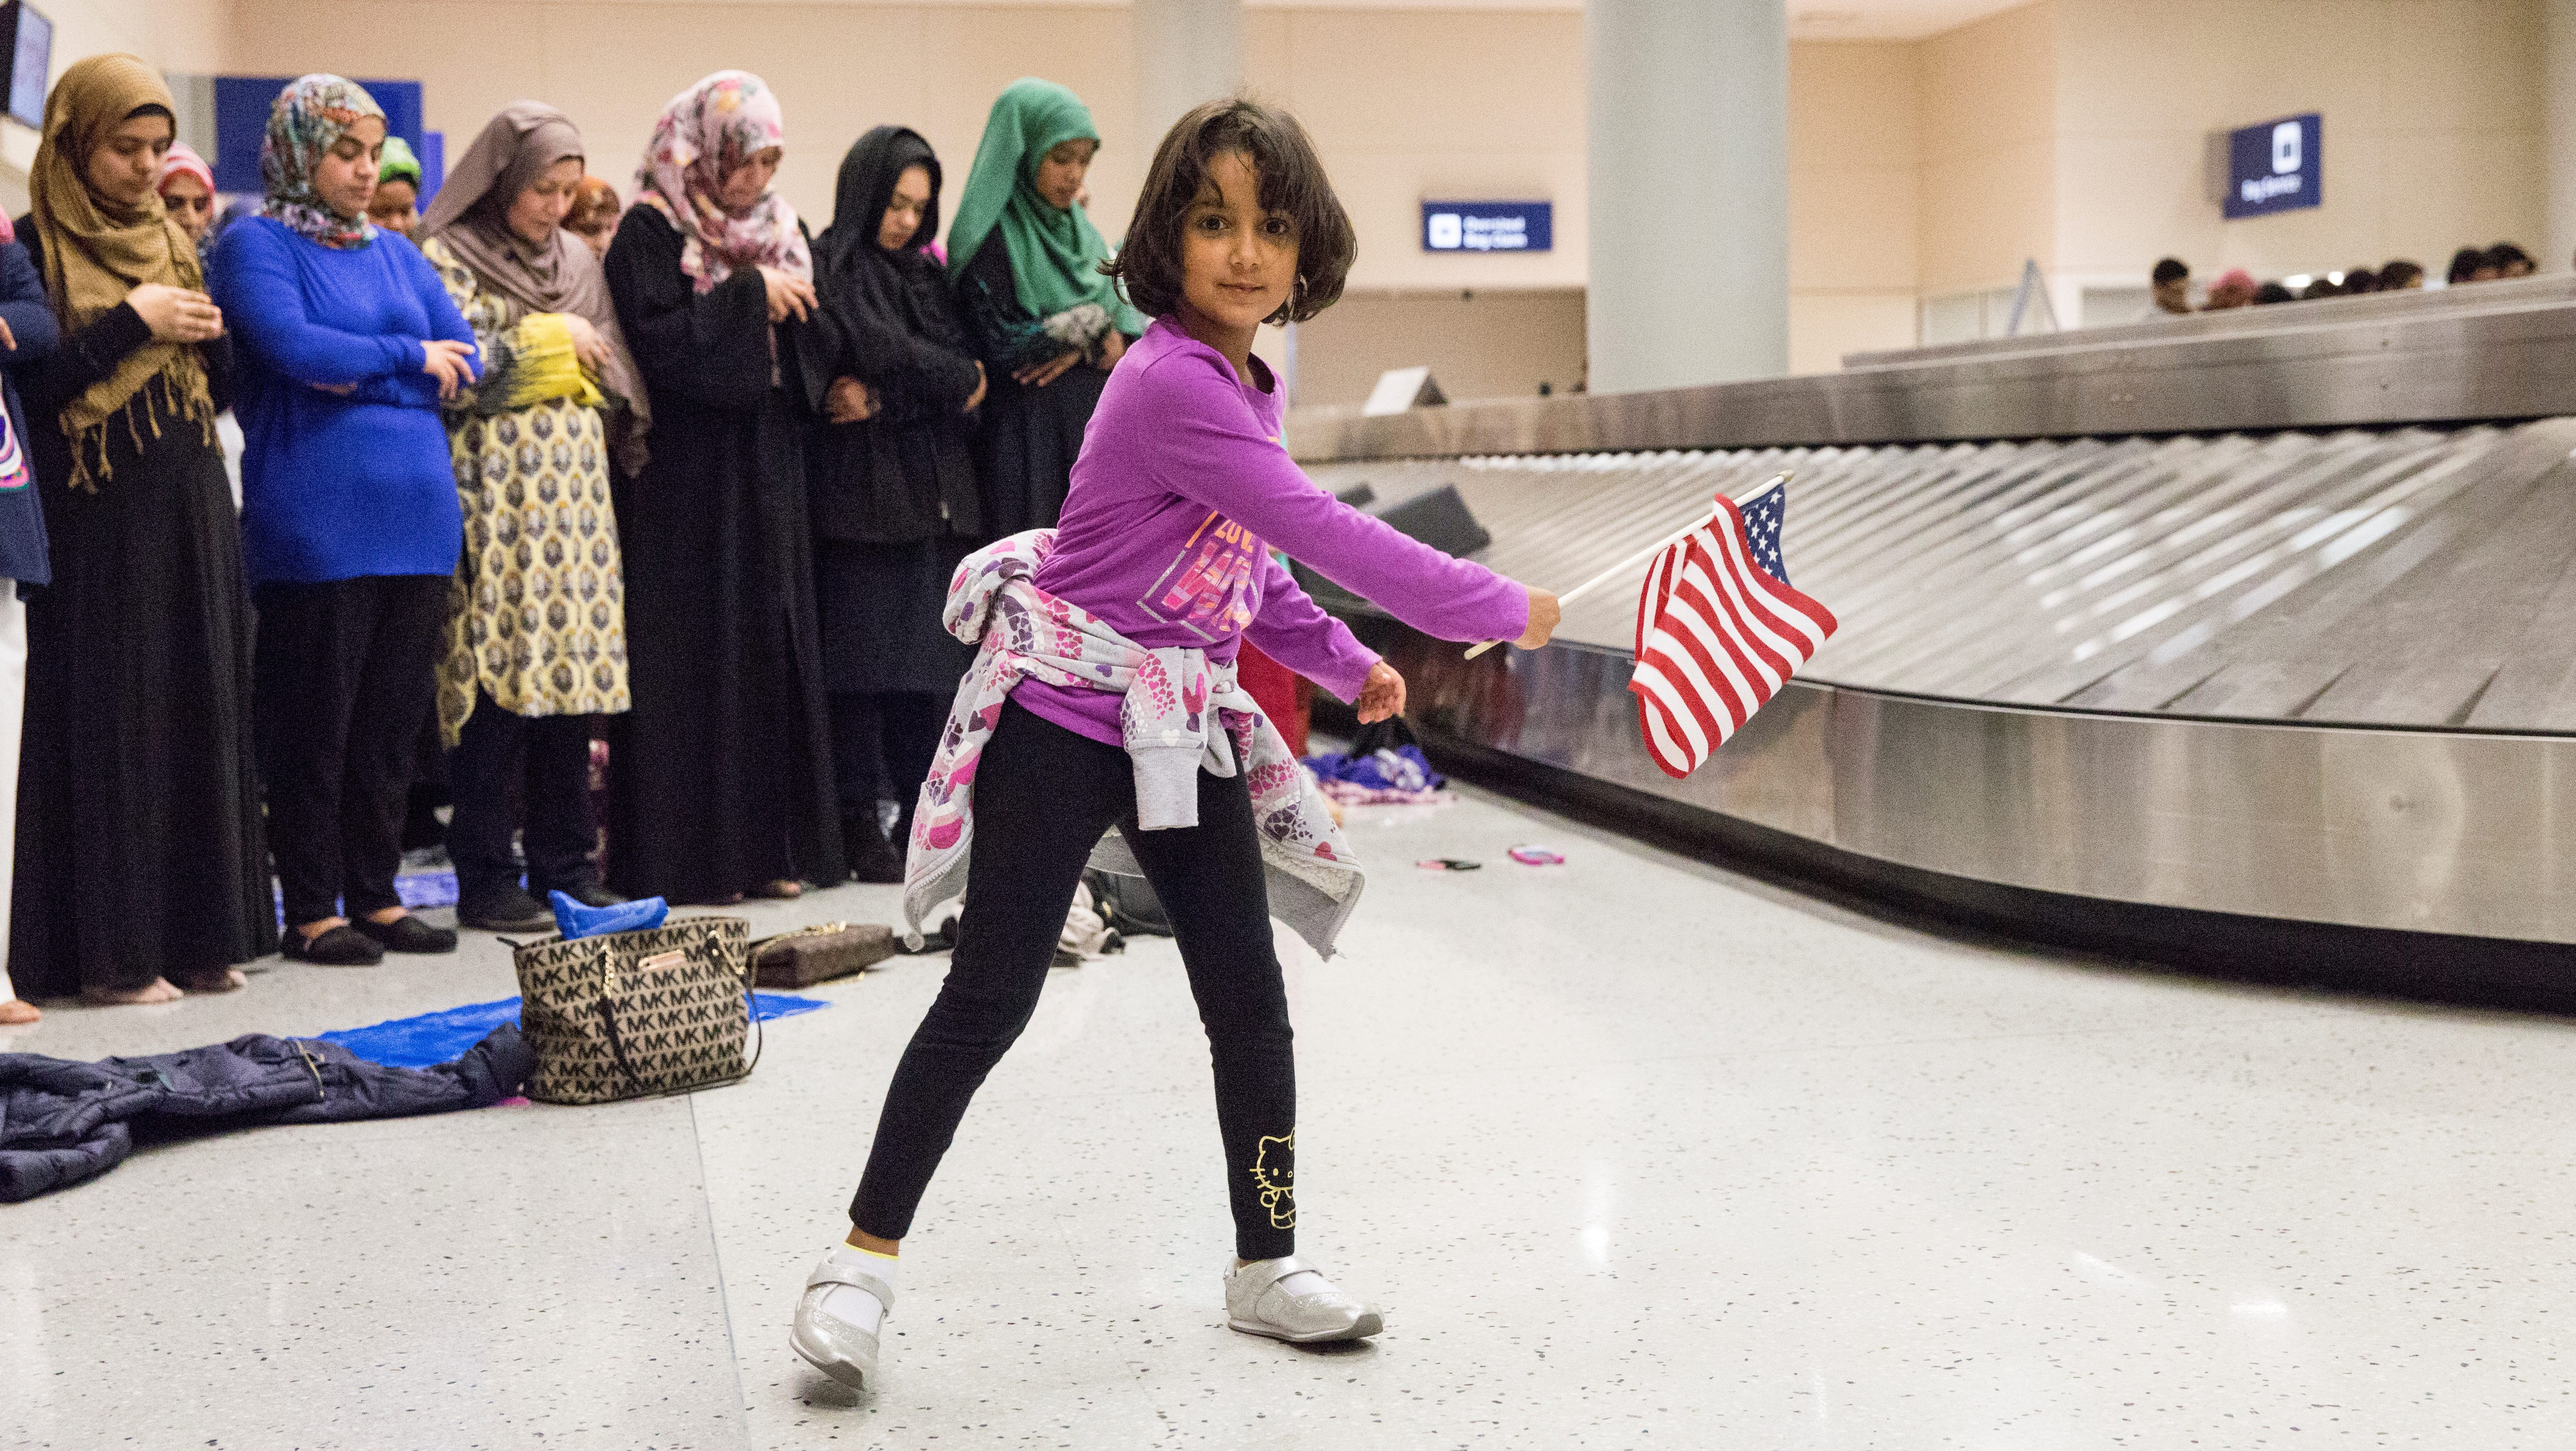 A young girl dances with an American flag in baggage claim while women pray behind her during a protest against the travel ban imposed by U.S. President Donald Trump's executive order, at Dallas/Fort Worth International Airport in Dallas, Texas, U.S. January 29, 2017.  REUTERS/Laura Buckman - RC11D43576E0